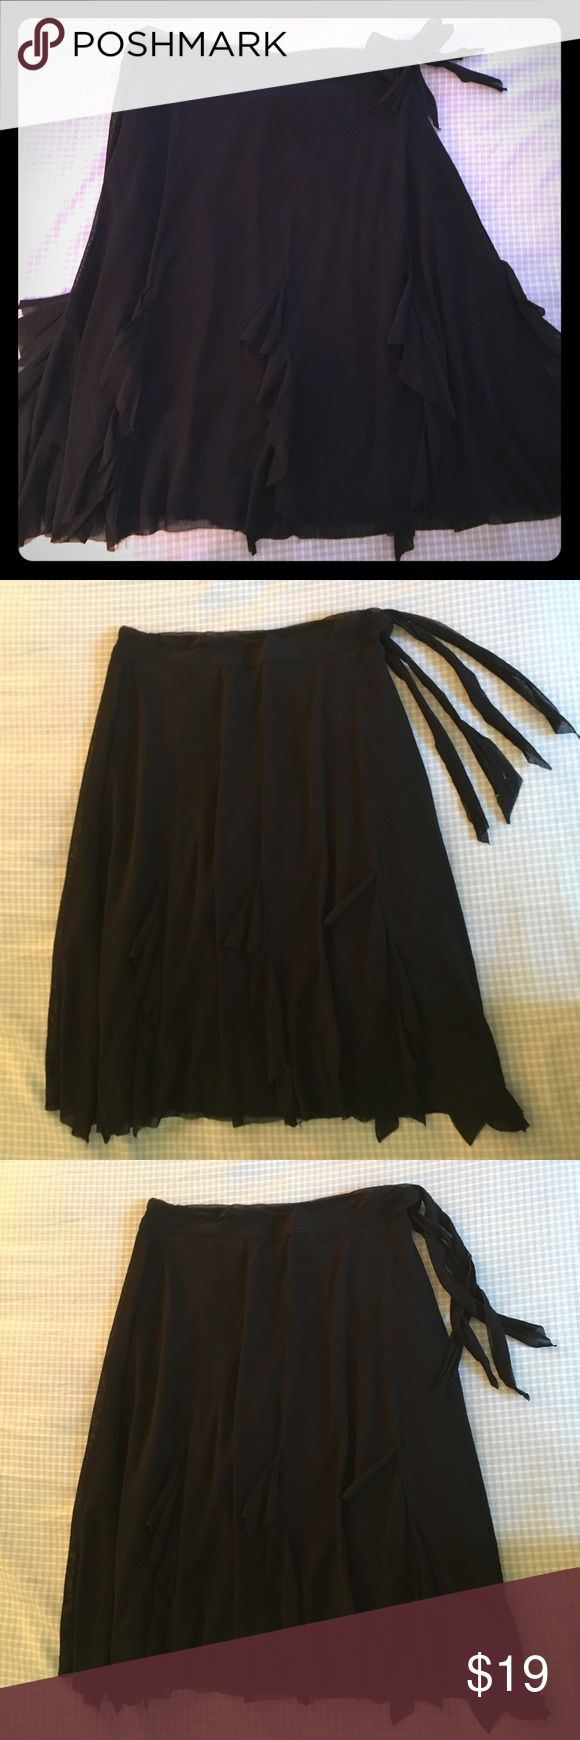 """VERY FEMININE ONLY HEARTS NYC BLACK SKIRT. Very feminine Only Hearts NYC black skirt. Purchased st a boutique, Lola Bella in Boca Raton Florida.This is a great versatile piece. Has very subtle petals around it. Can be worn very casual with a tank and flip flips or dressy with a nice top and shoes. Material is 100% Nylon. Worn once for a few hours. From waist to hem 19"""". Size SP. Skirts"""